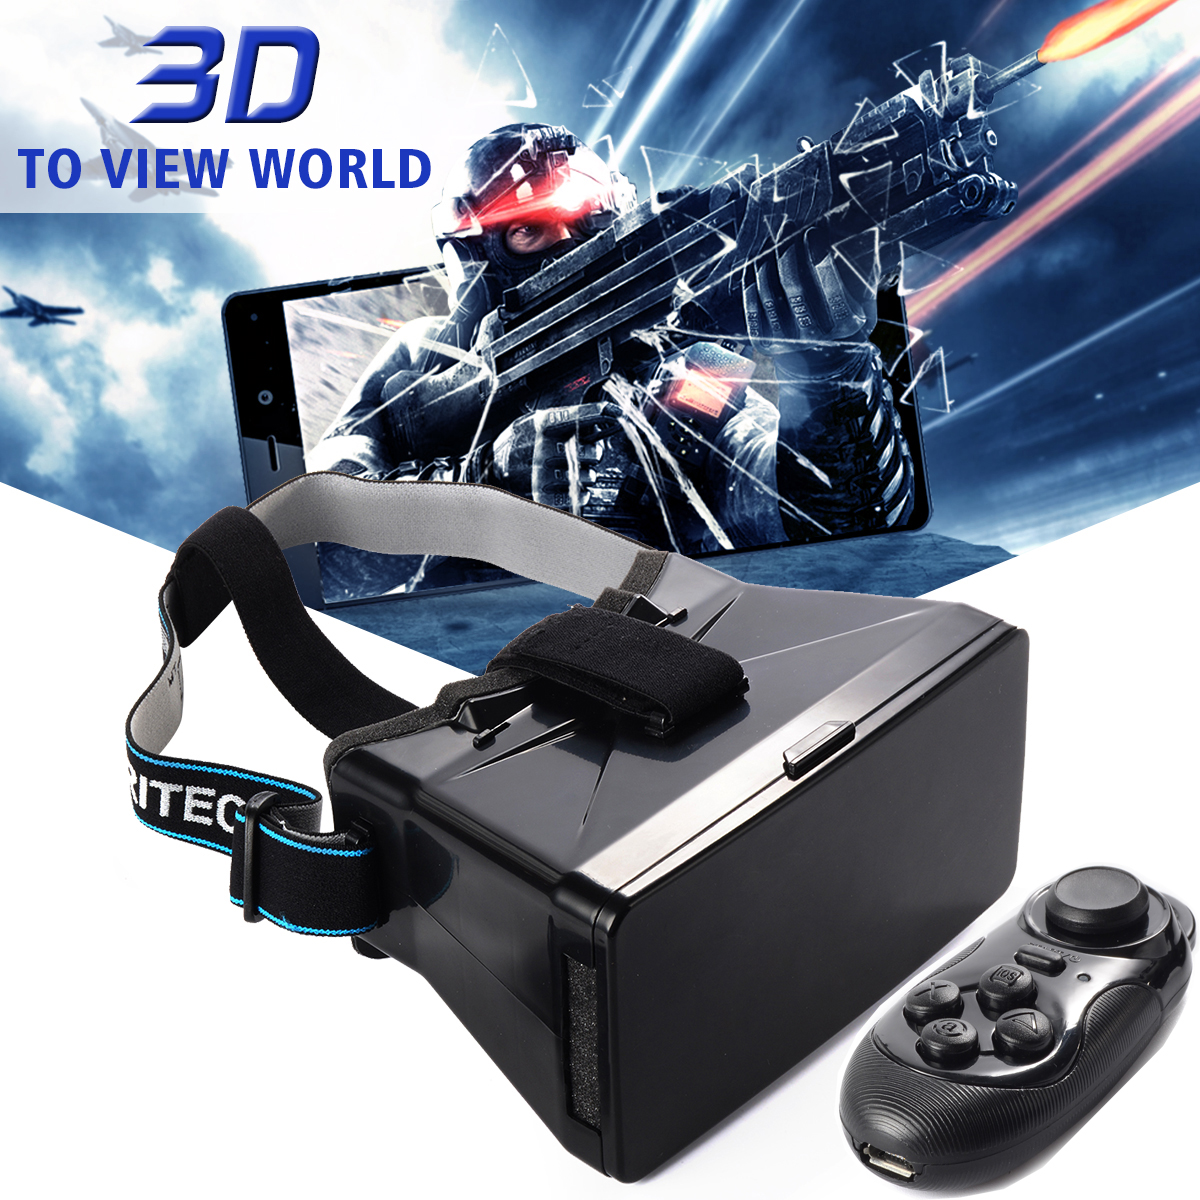 Virtual Reality Glasses for 3D Movies/Games